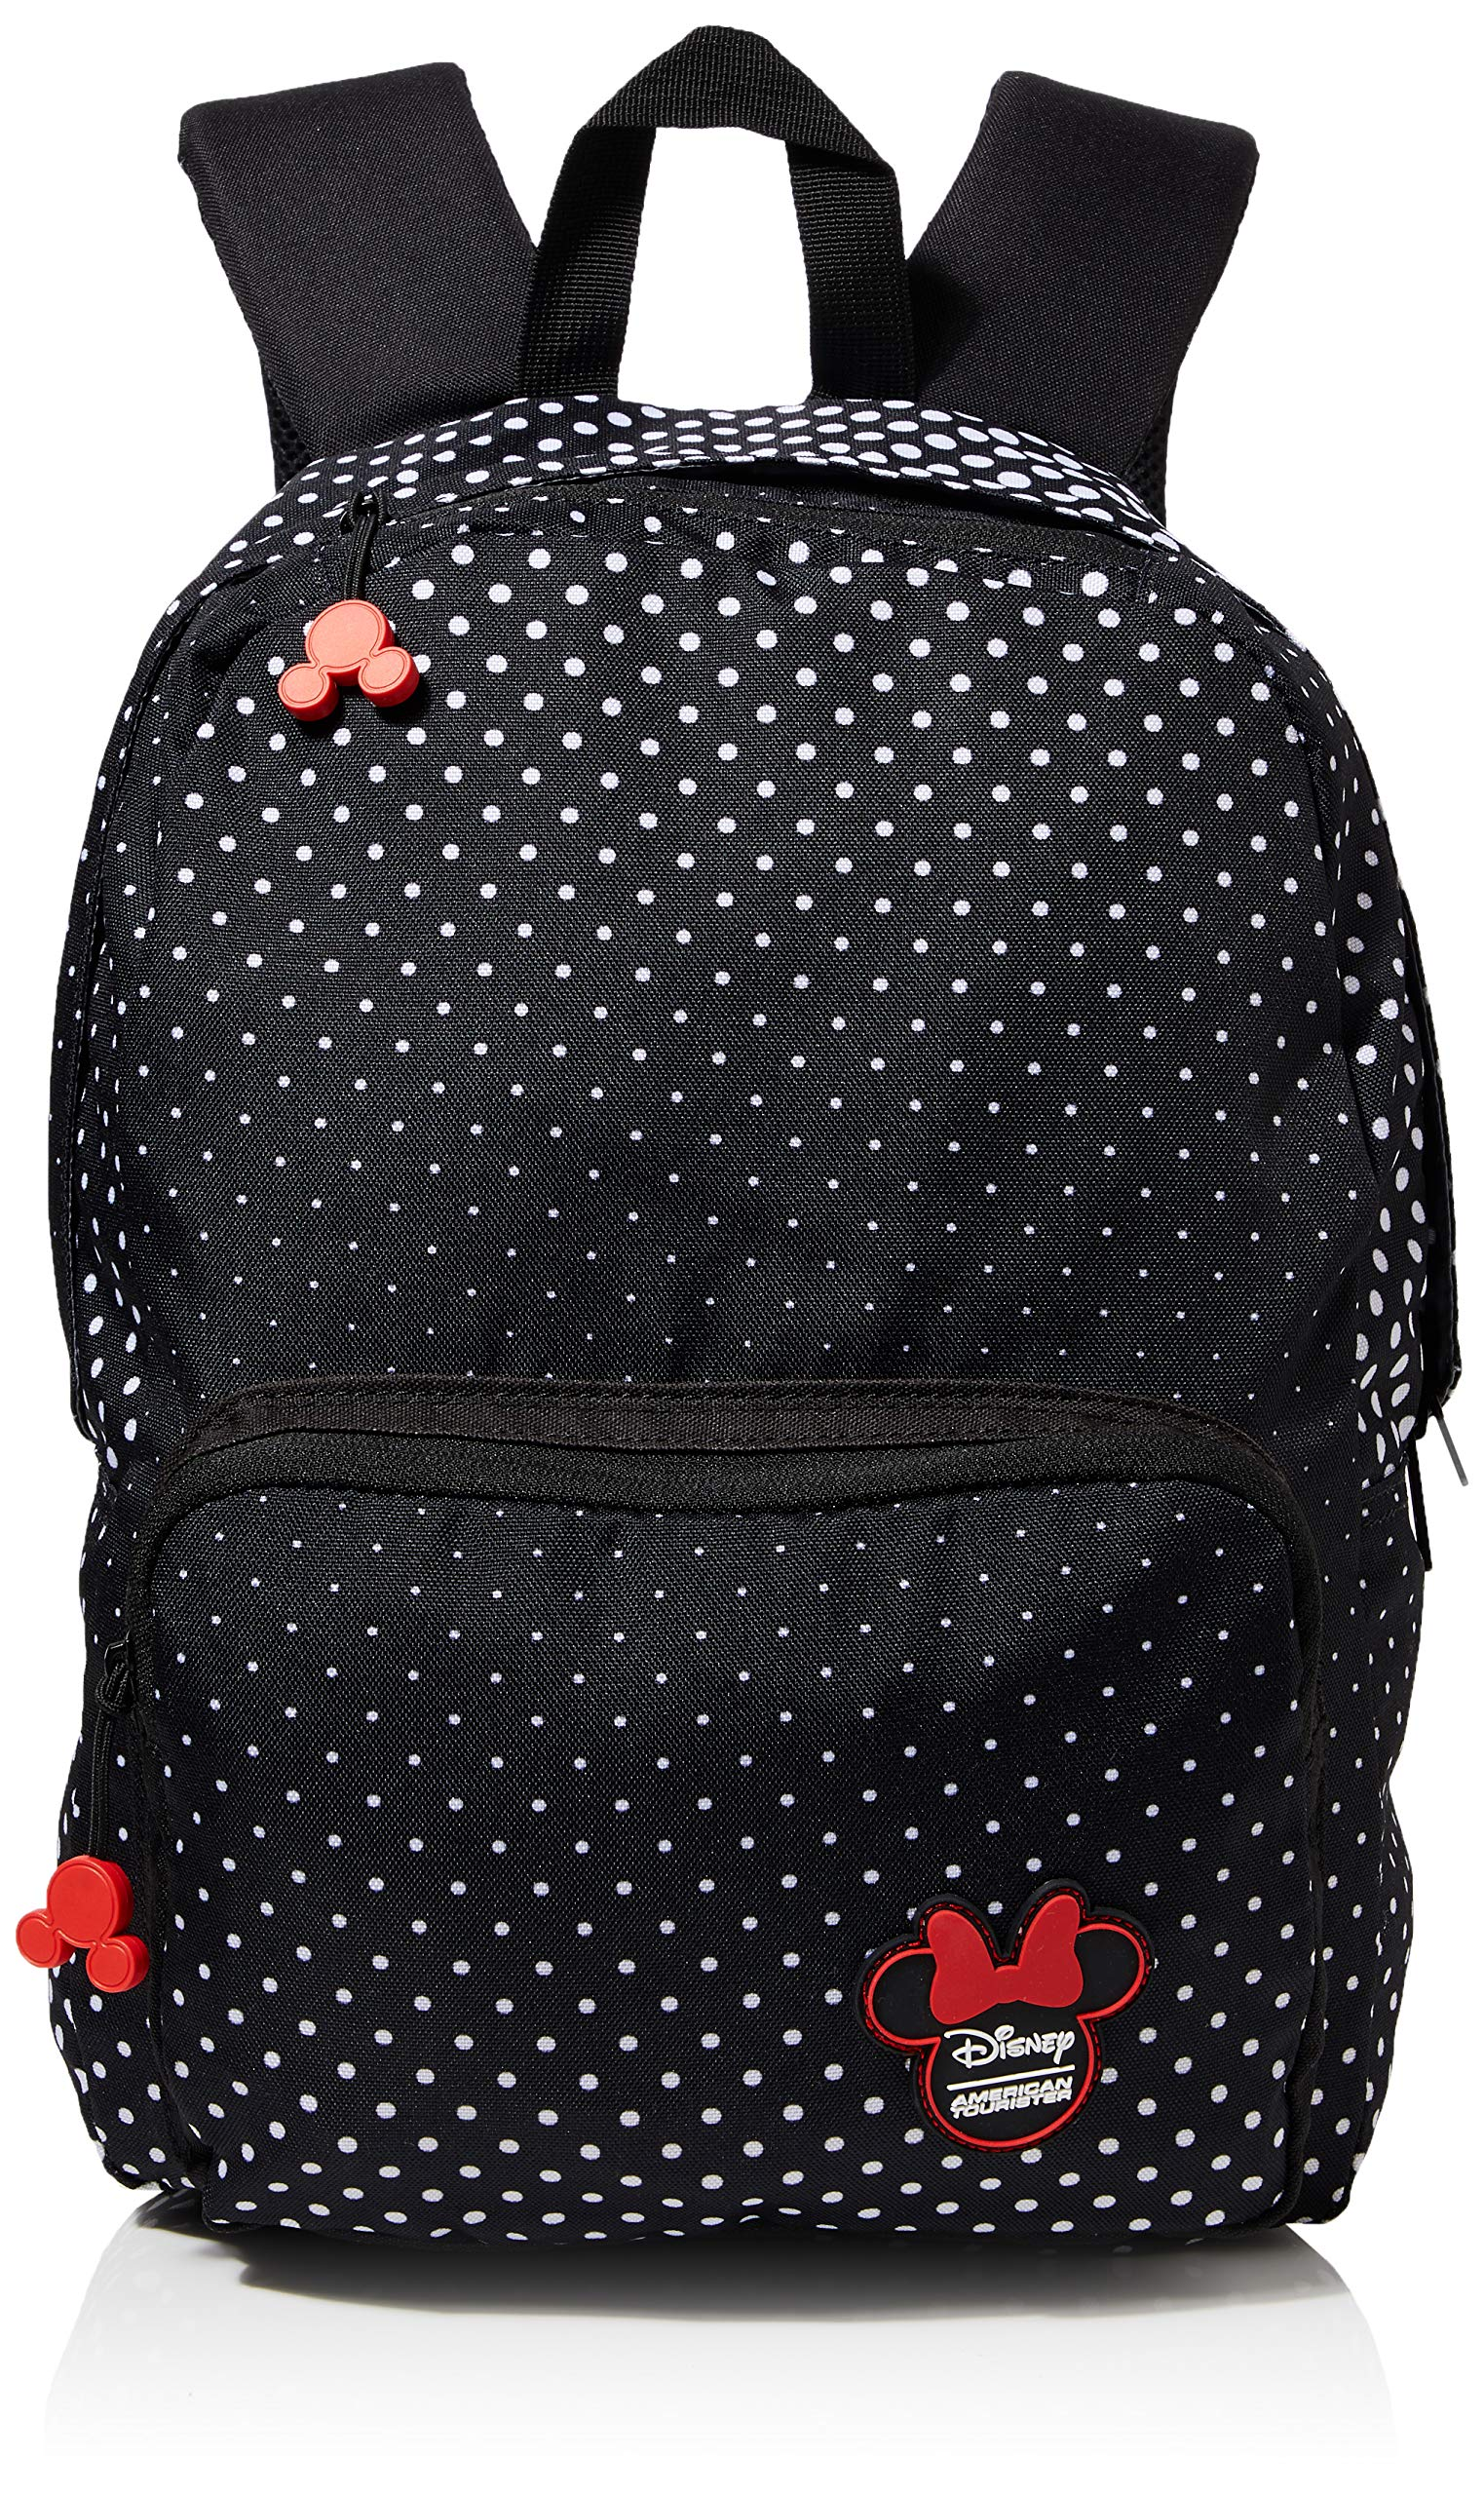 40 cm American Tourister Urban Groove Disney 16 liters Backpack Medium Sac /à Dos Loisir Multicolore Mickey Comics Red